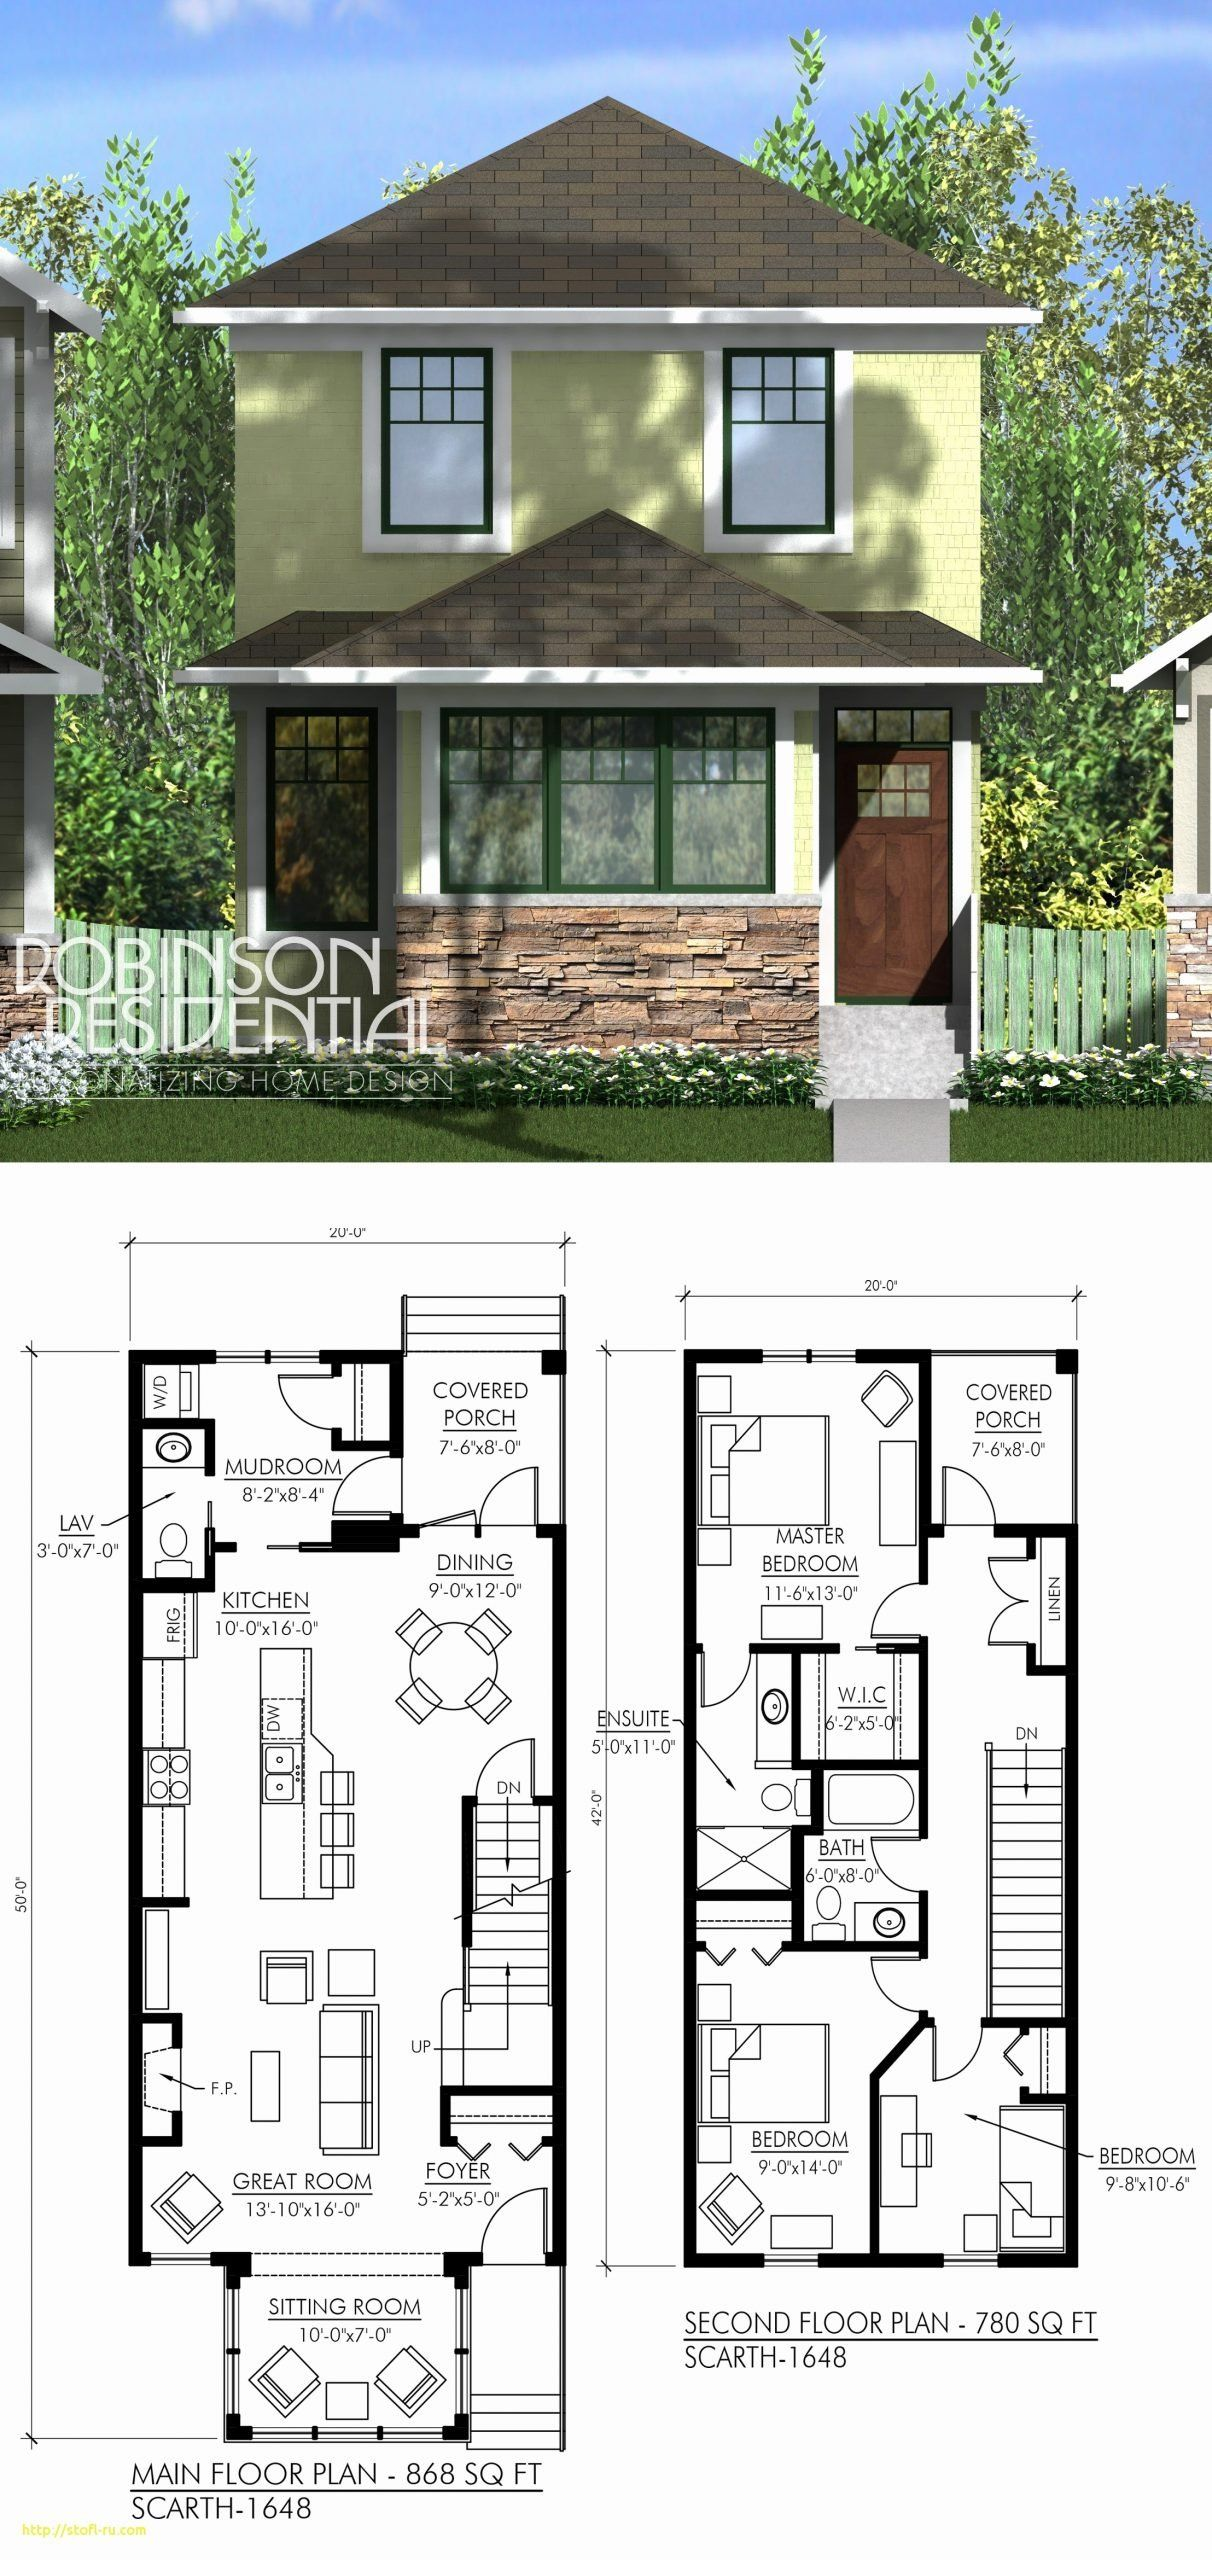 Creole Style House Plans Inspirational 17 Brilliant Cottage Home Plans French To Get Mid C In 2020 Narrow Lot House Plans Bungalow House Design Ranch Style House Plans